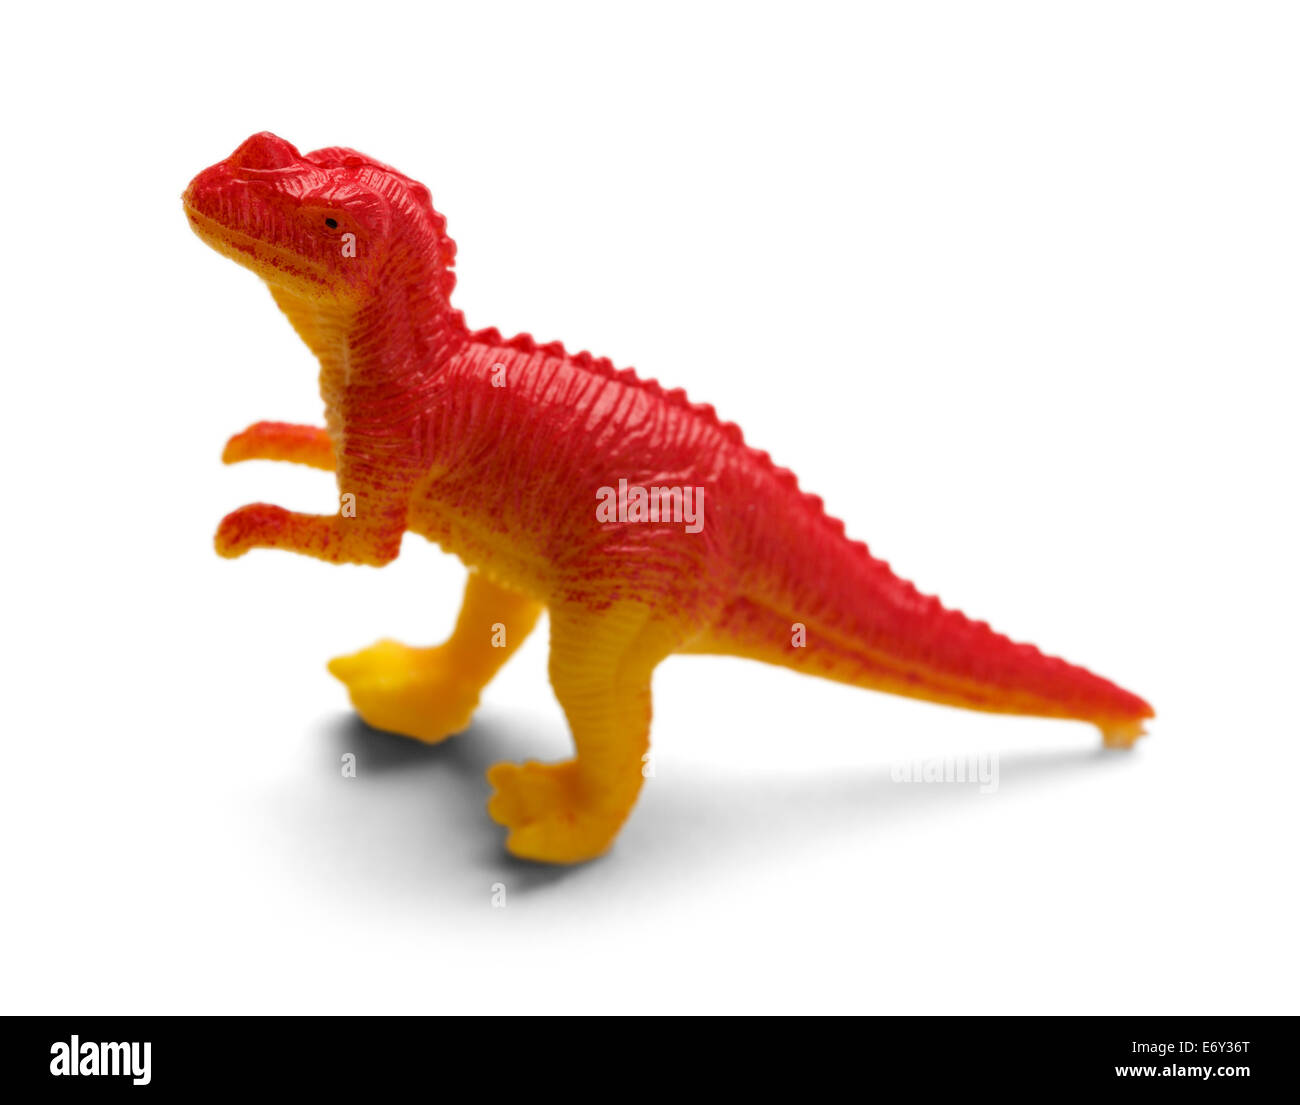 Plastic Red Dinosaur Isolated on White Background. - Stock Image